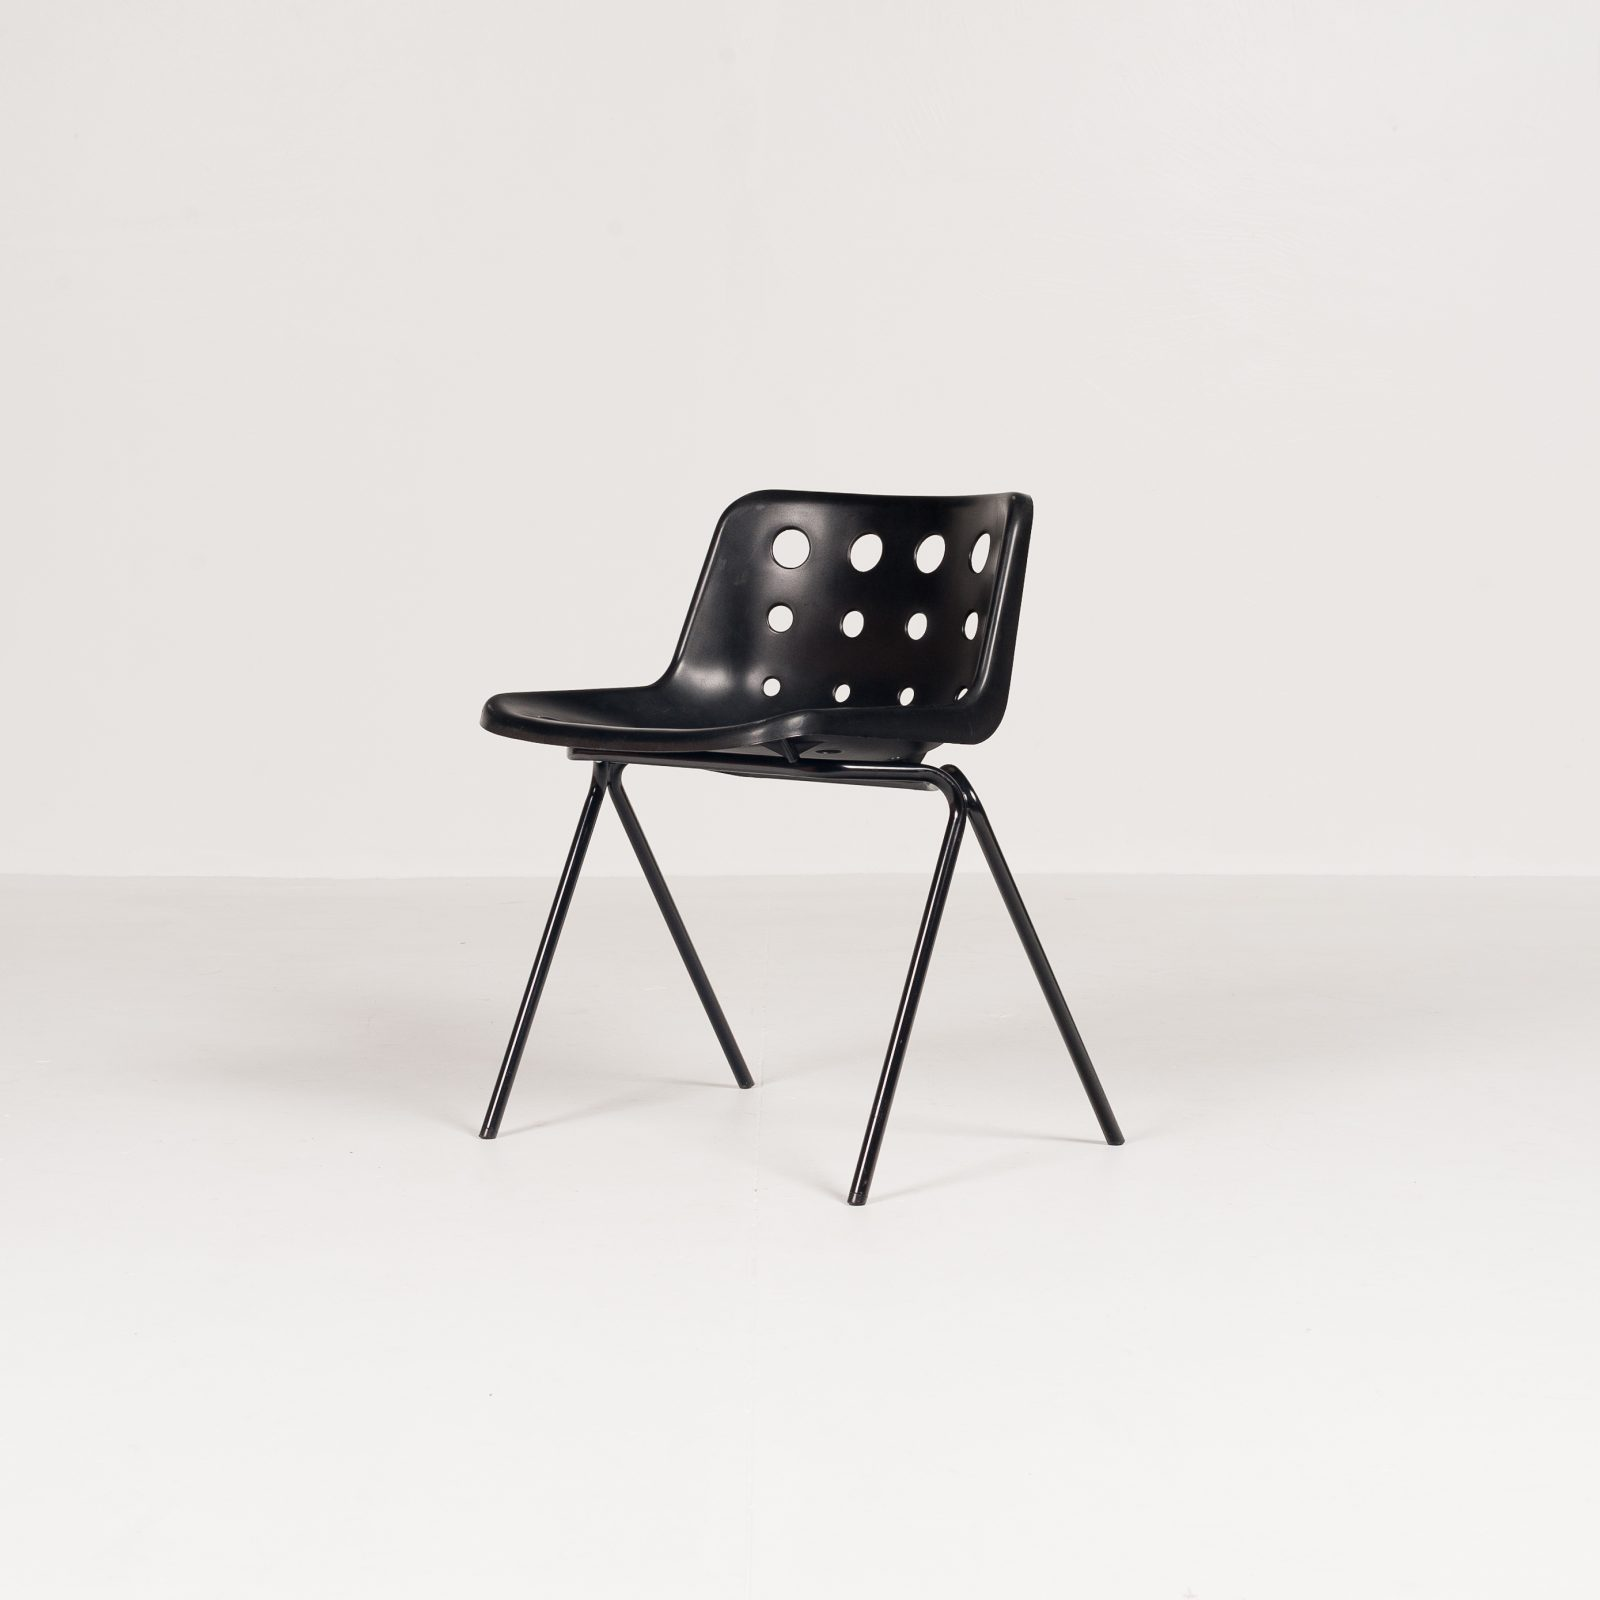 Hero Polo Stacking Chair By Robin Day In Black Polyproylene, 1970s, England5880